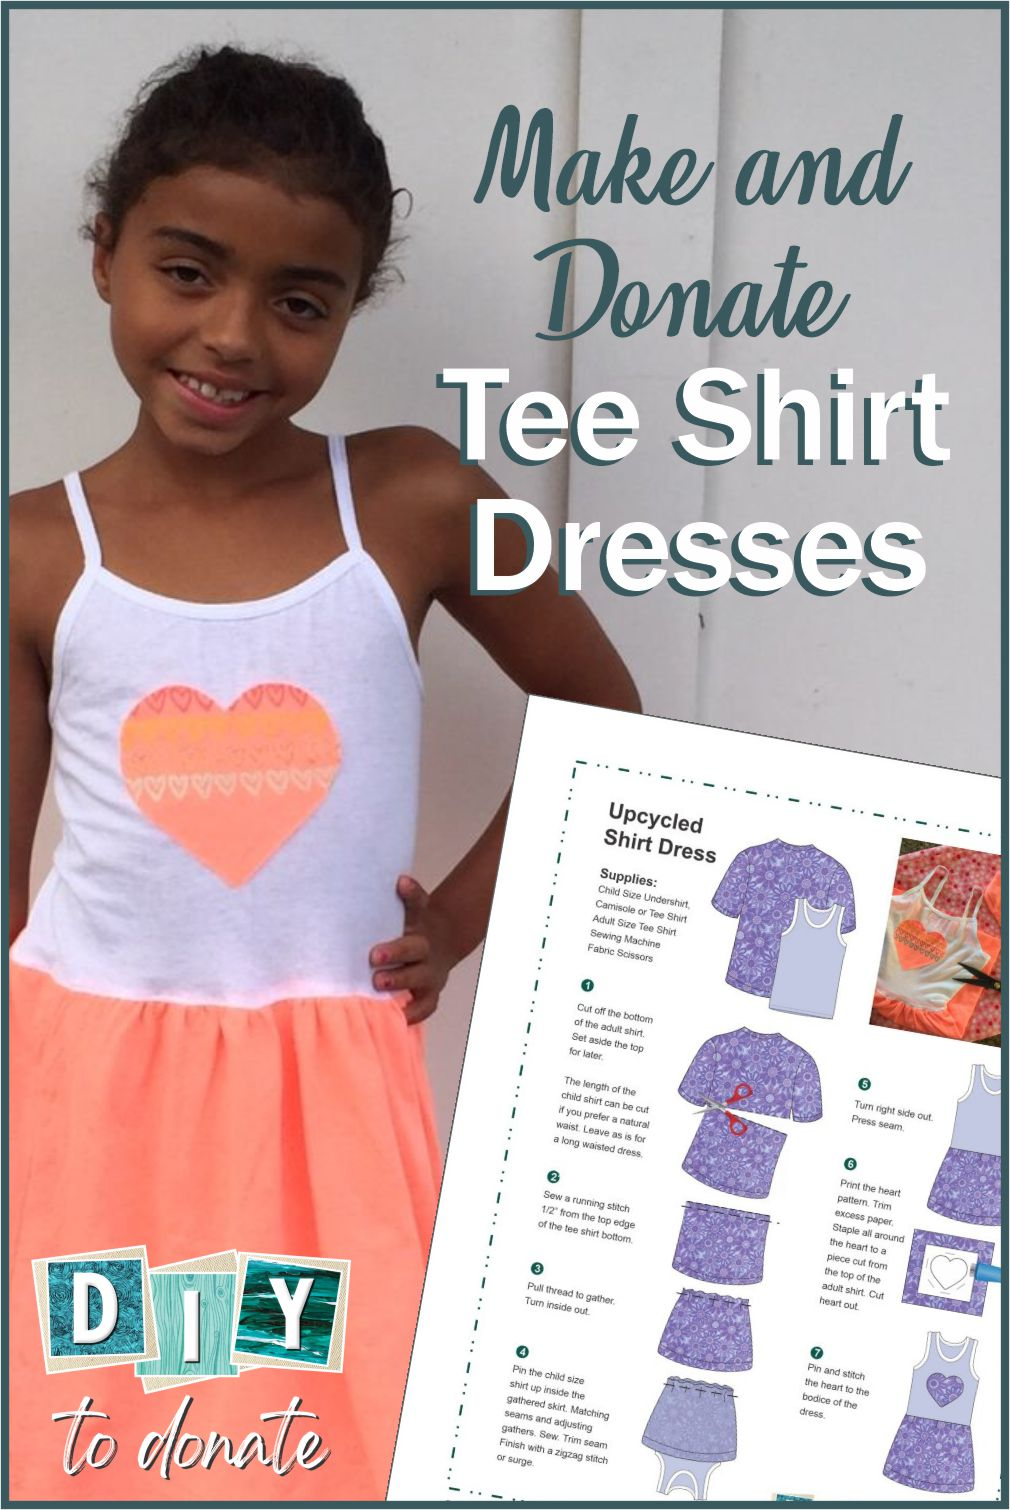 Easy step-by-step tutorial for making tee shirt dresses from two tee shirts. No other supplies needed. Free PDF Download Included. #diytodonate #tshirtdresses #dresses #handmade #dresses #tutorial #printable #freeprintable #tshirts #maketodonate